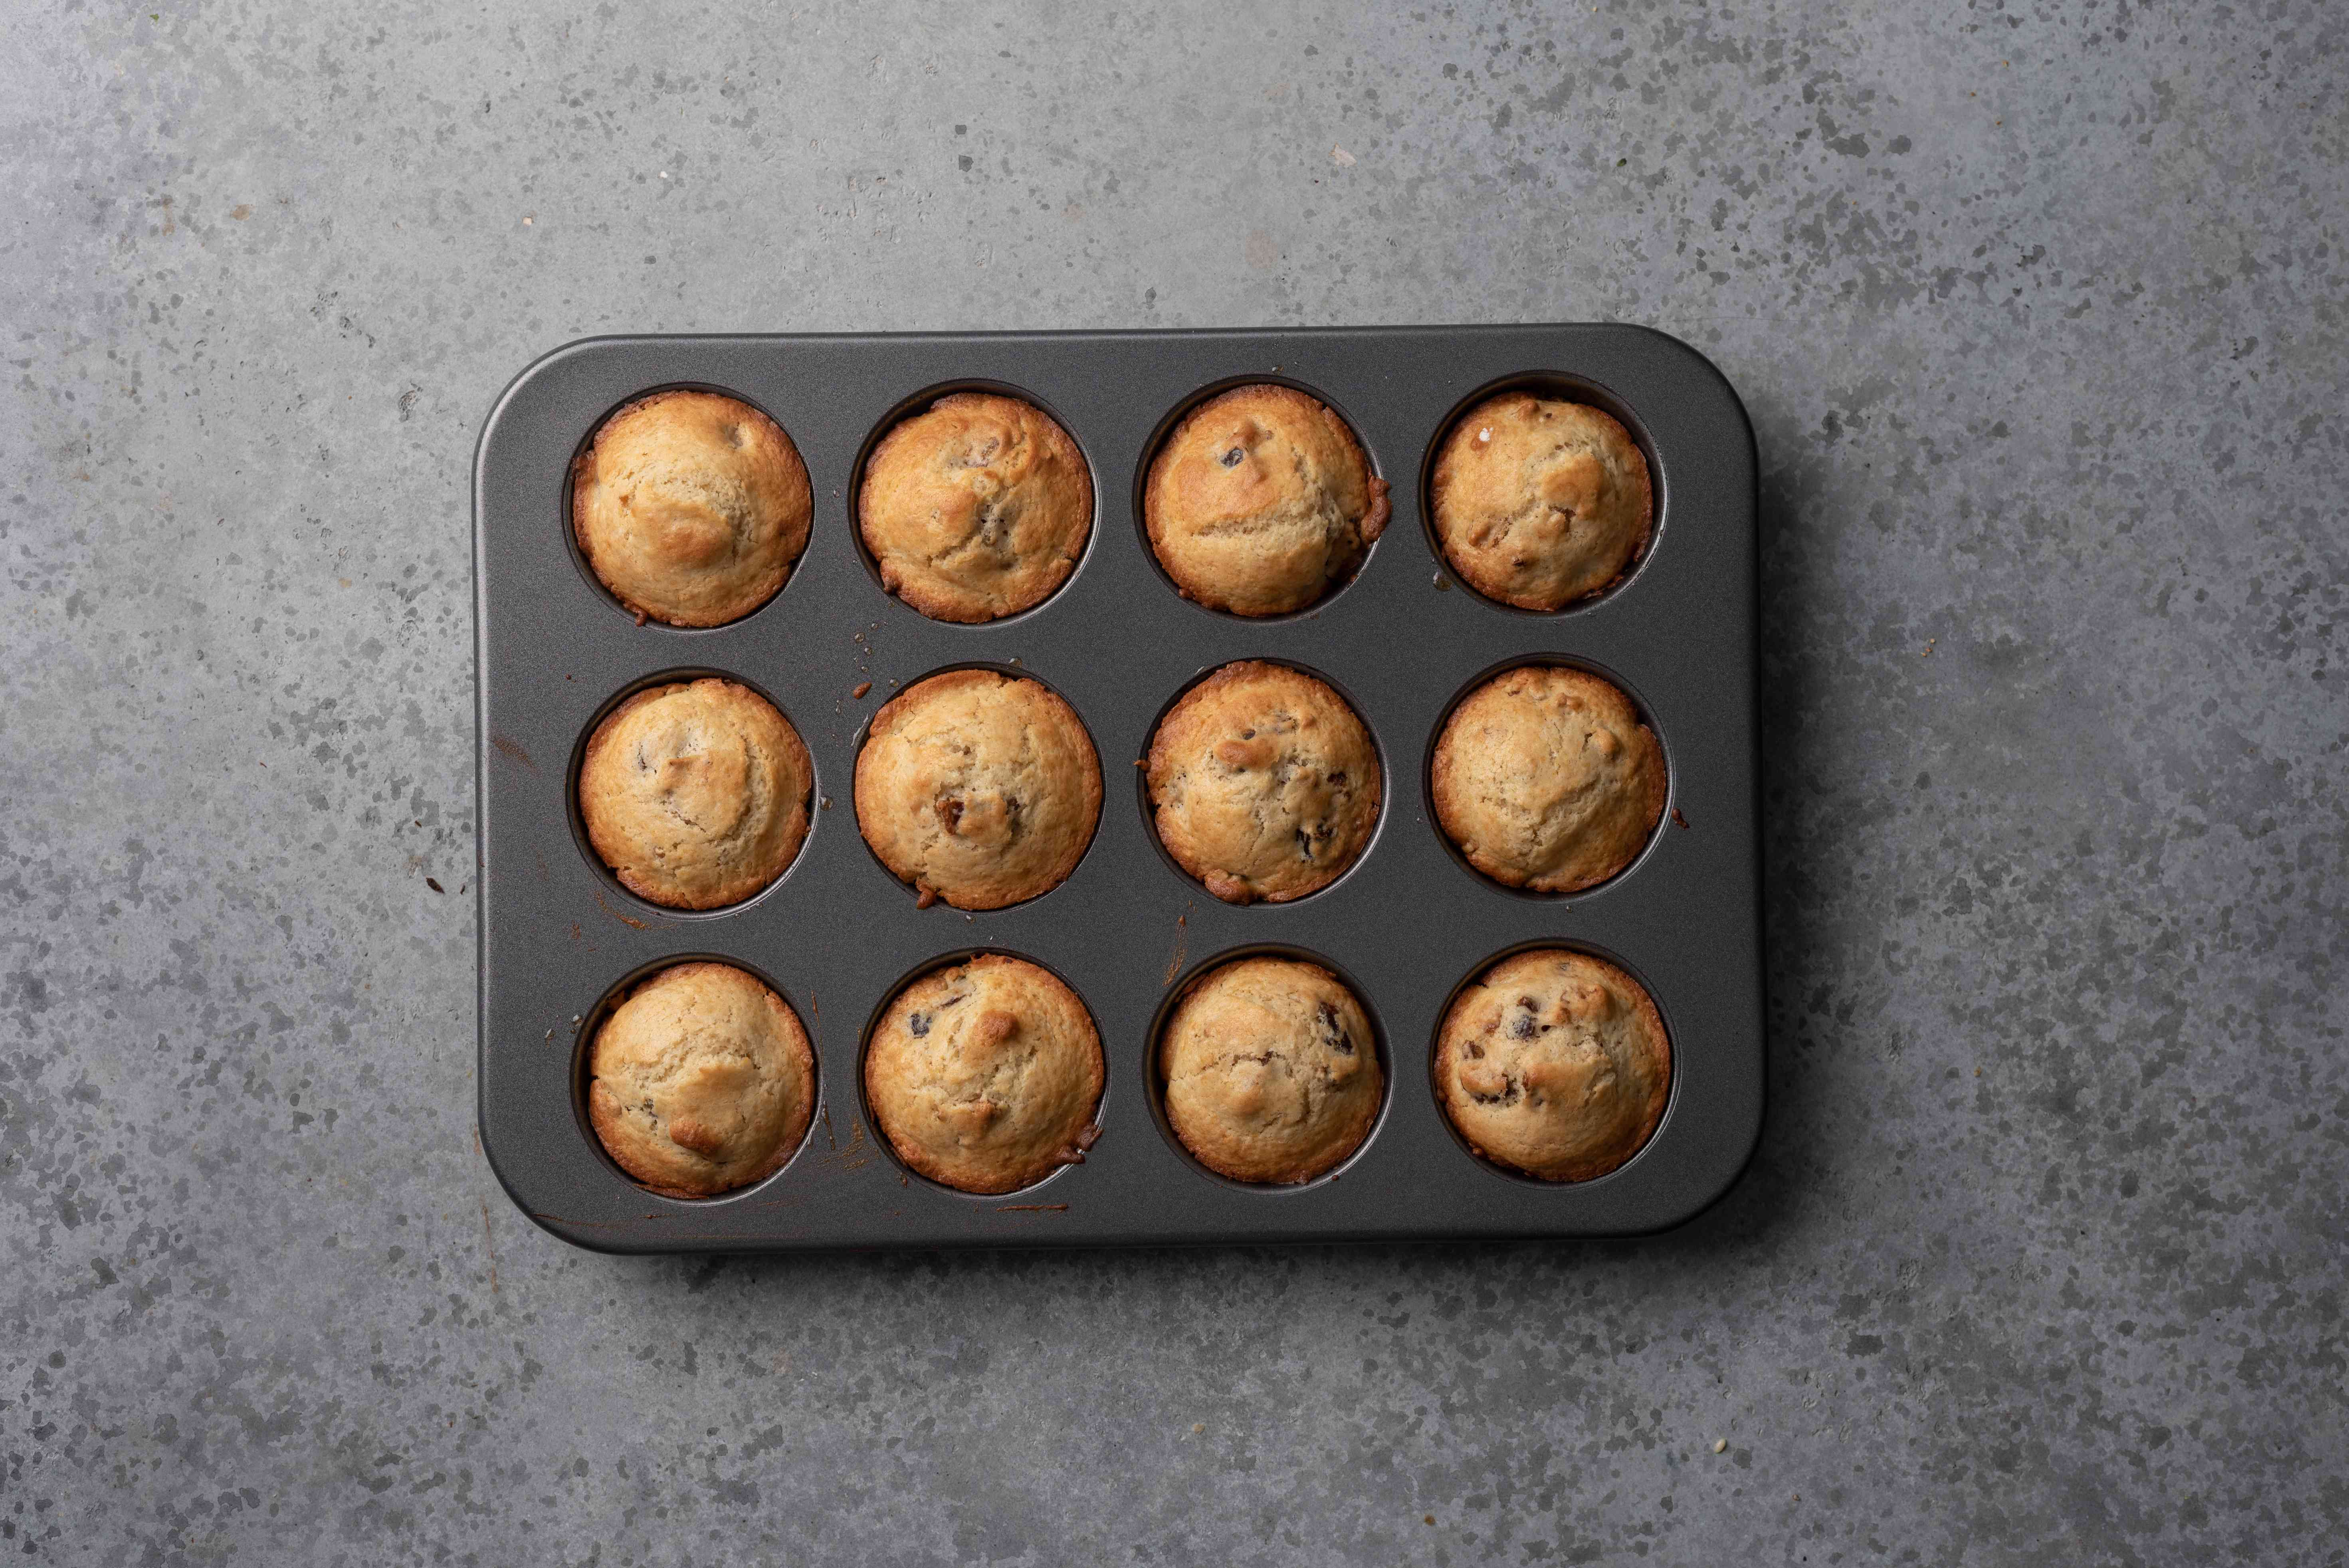 Date Muffins With Walnuts in muffin tins